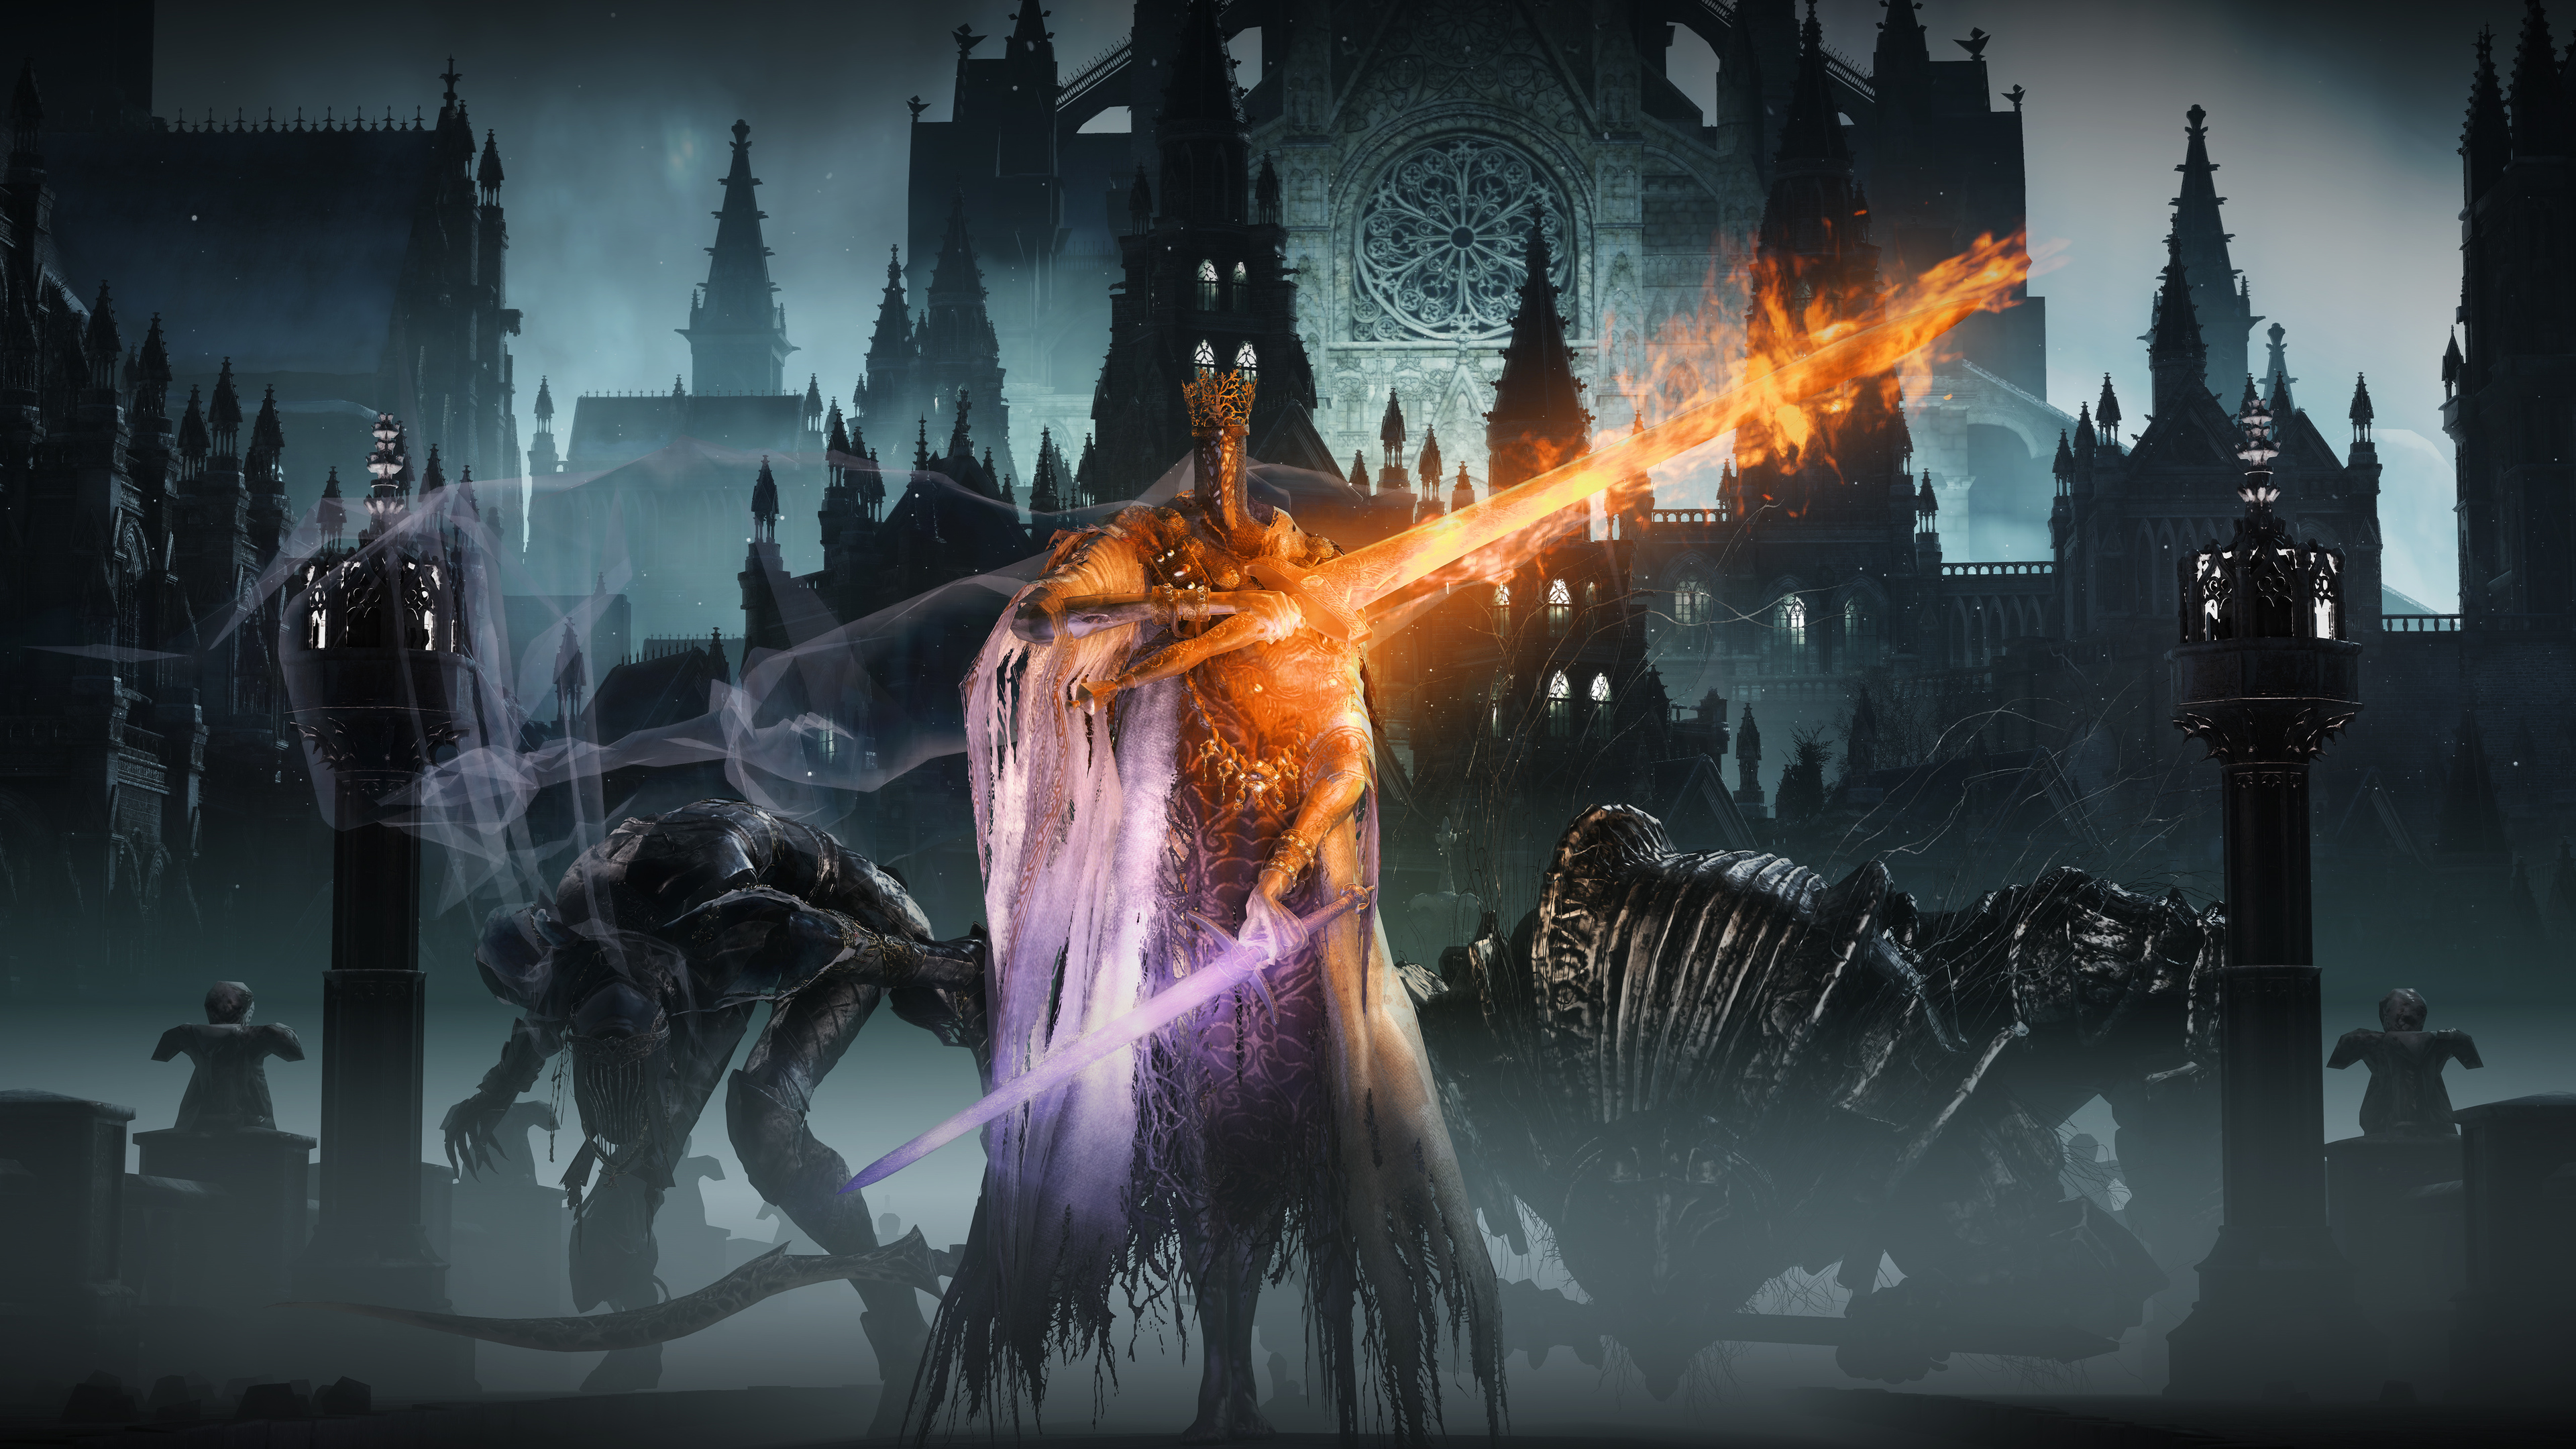 Wallpaper 4k Dark Souls 3 4k 4k Wallpapers Dark Souls 3